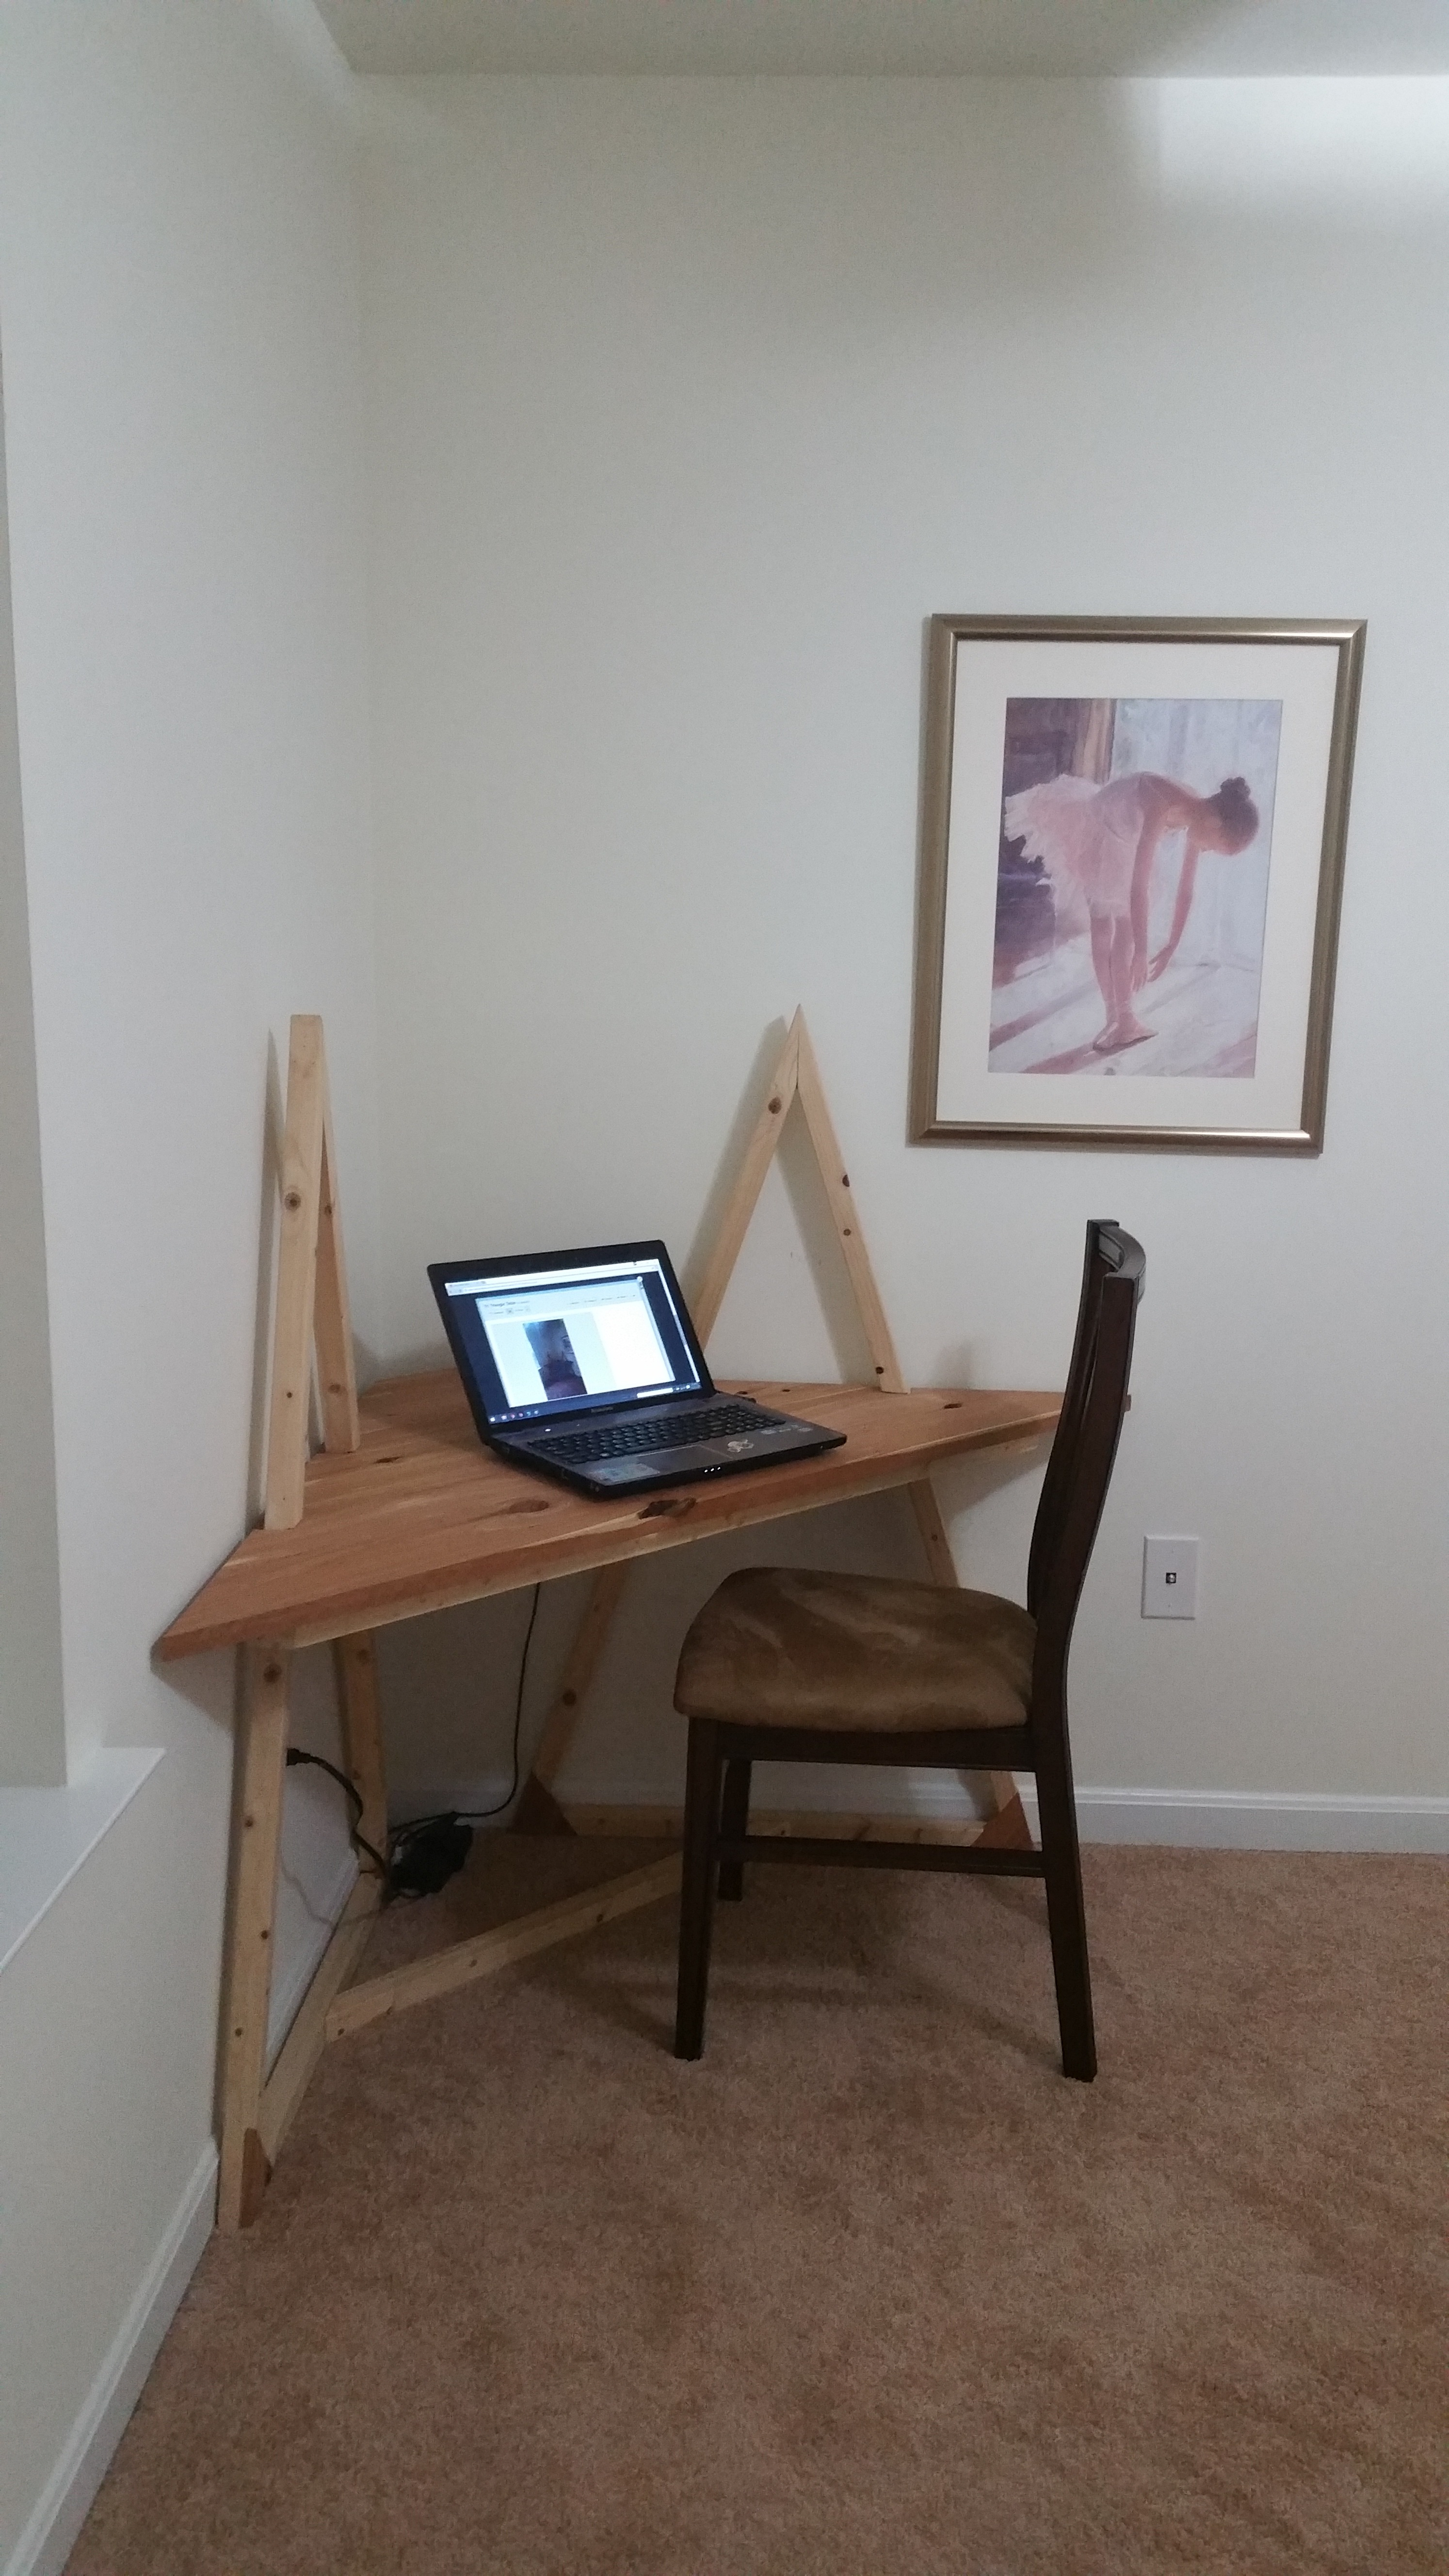 Picture of Tri Triangle Table